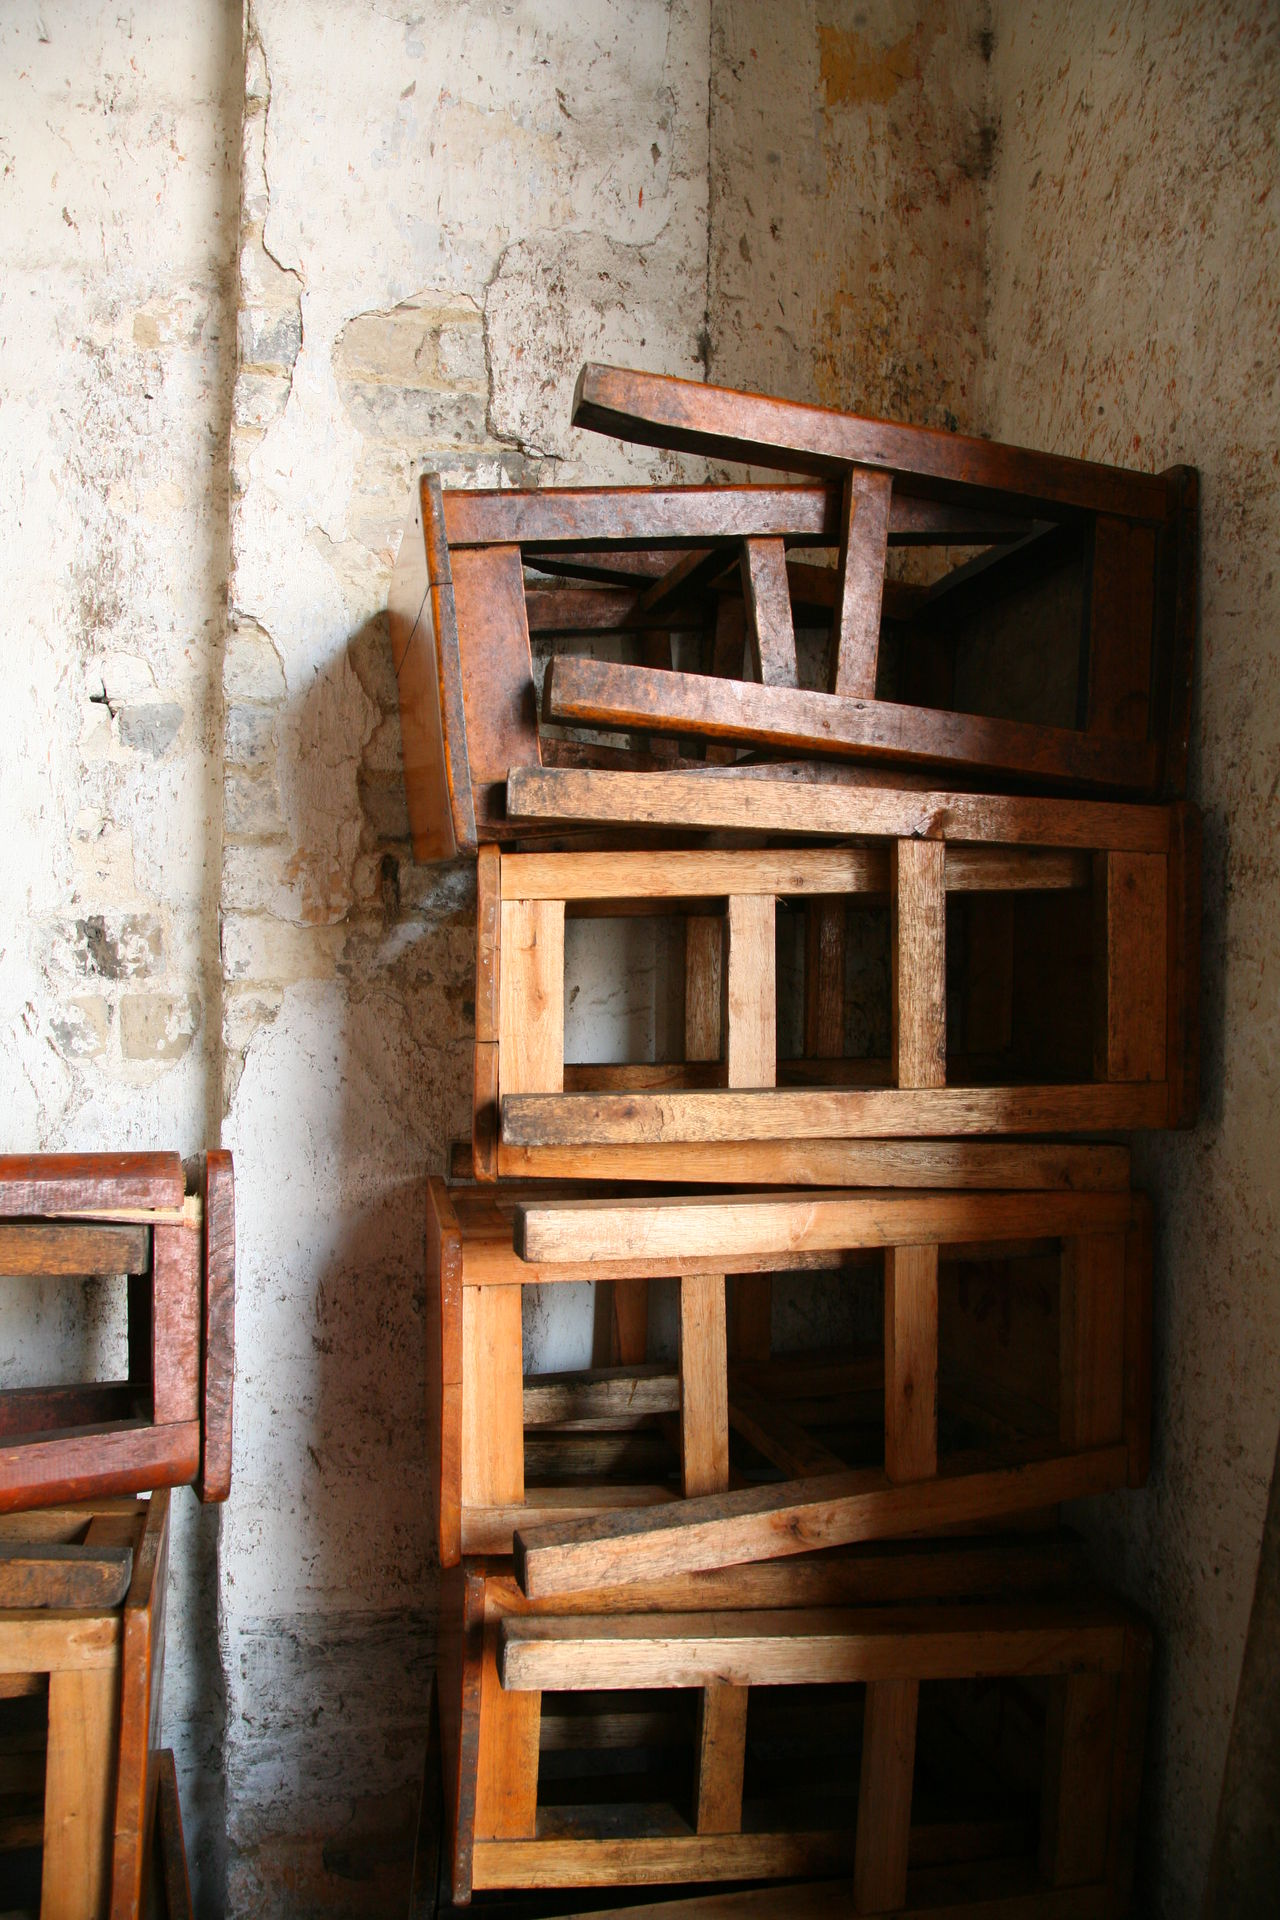 Beautifully Organized Chair Chairs Craft Craftsmanship  Restaurant Street Photography Streetphotography Wooden